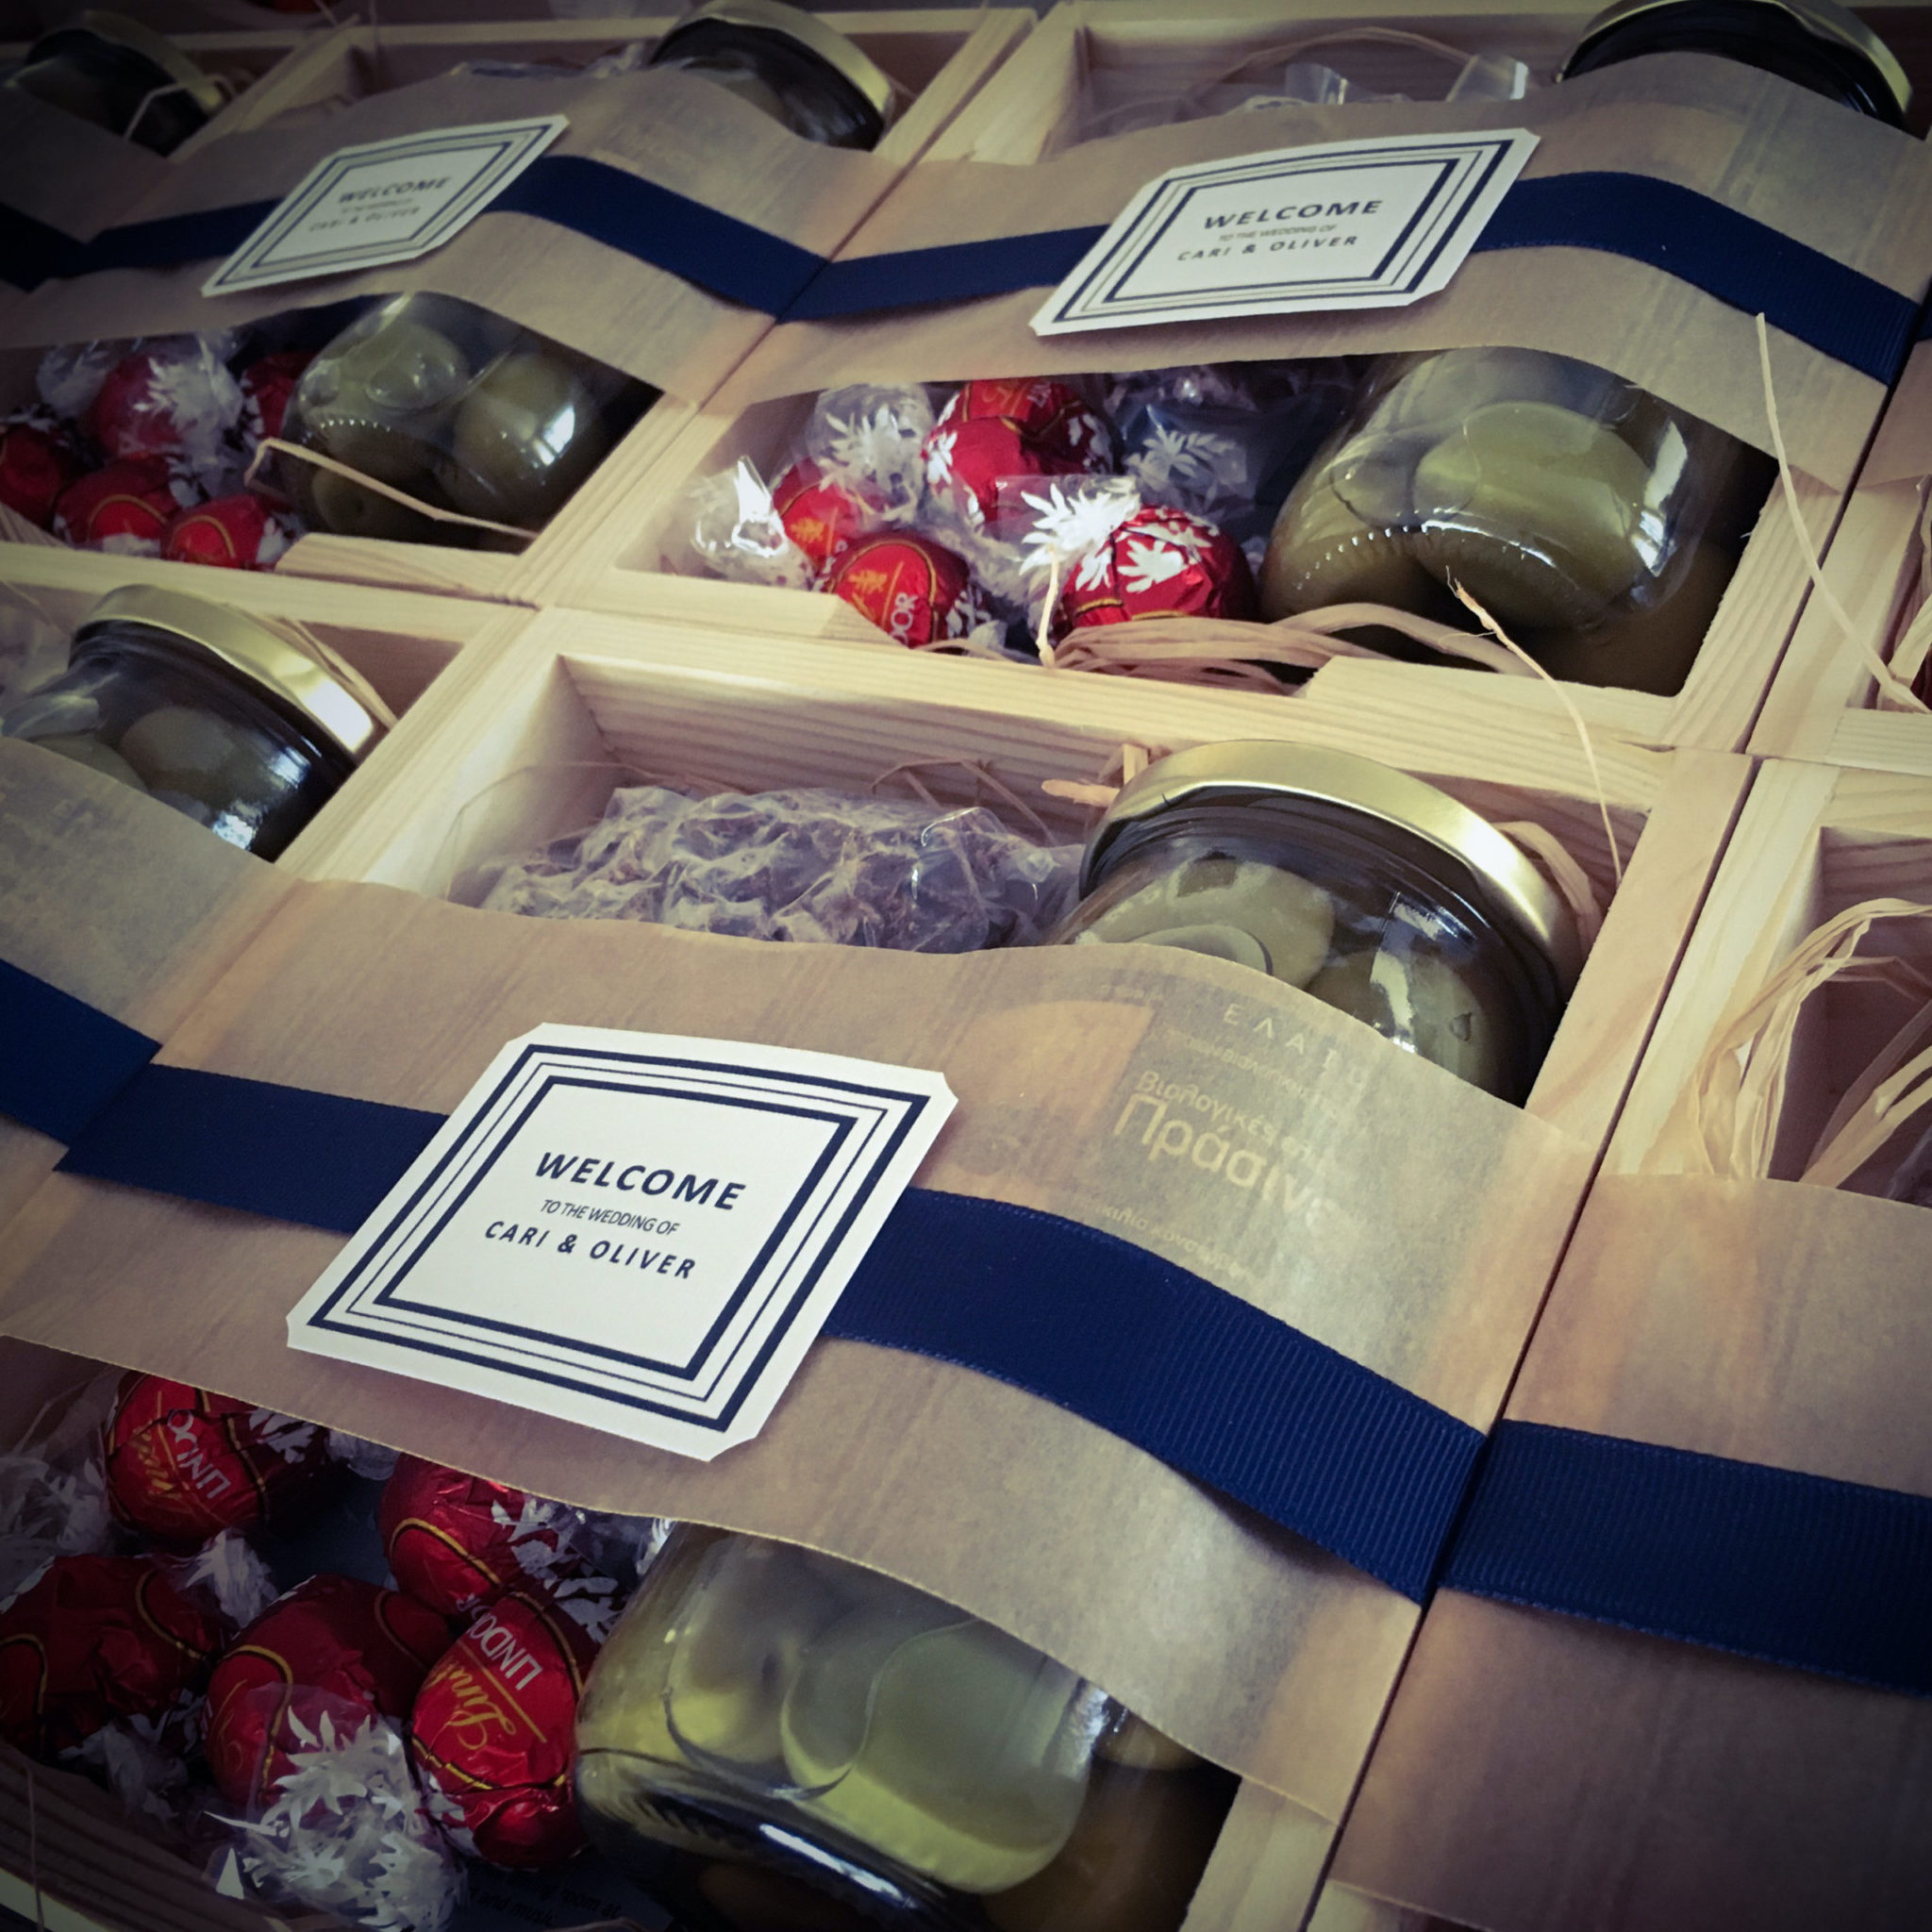 Olives, Chocolates And Biltong-wedding-welcome gift-close up